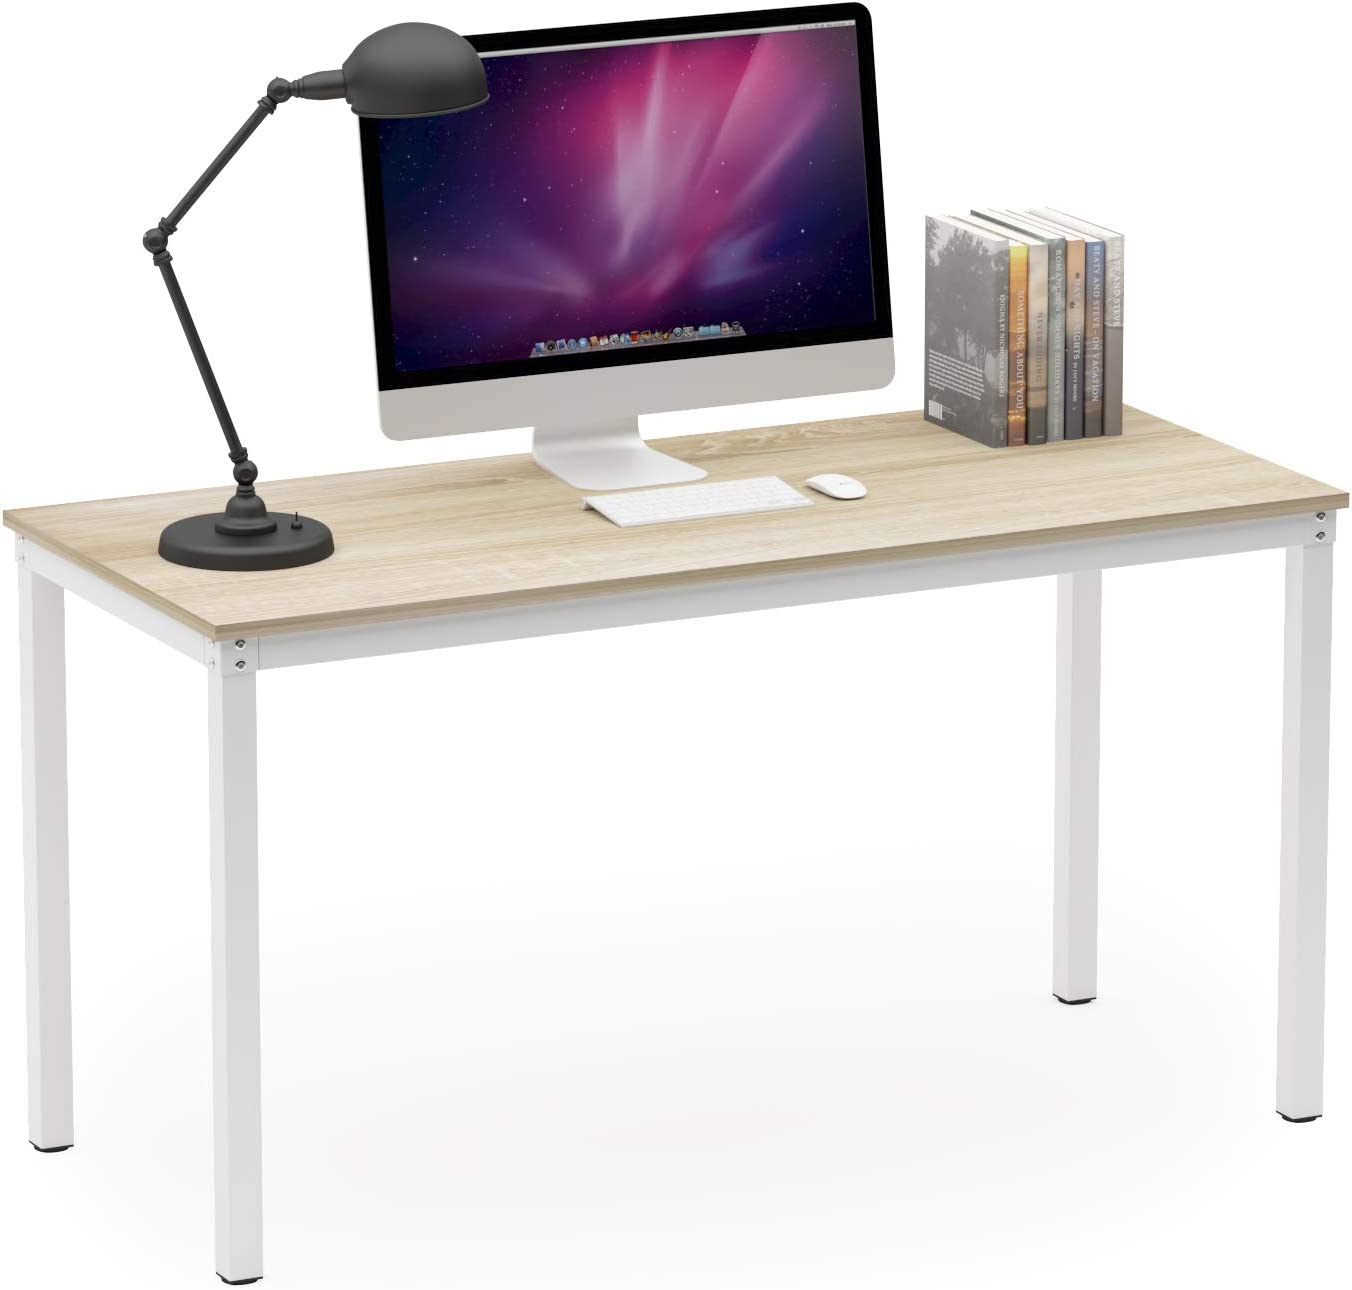 """Teraves Computer Desk/Dining Table Office Desk Sturdy Writing Workstation for Home Office (47.24"""", Beige + White Frame)"""